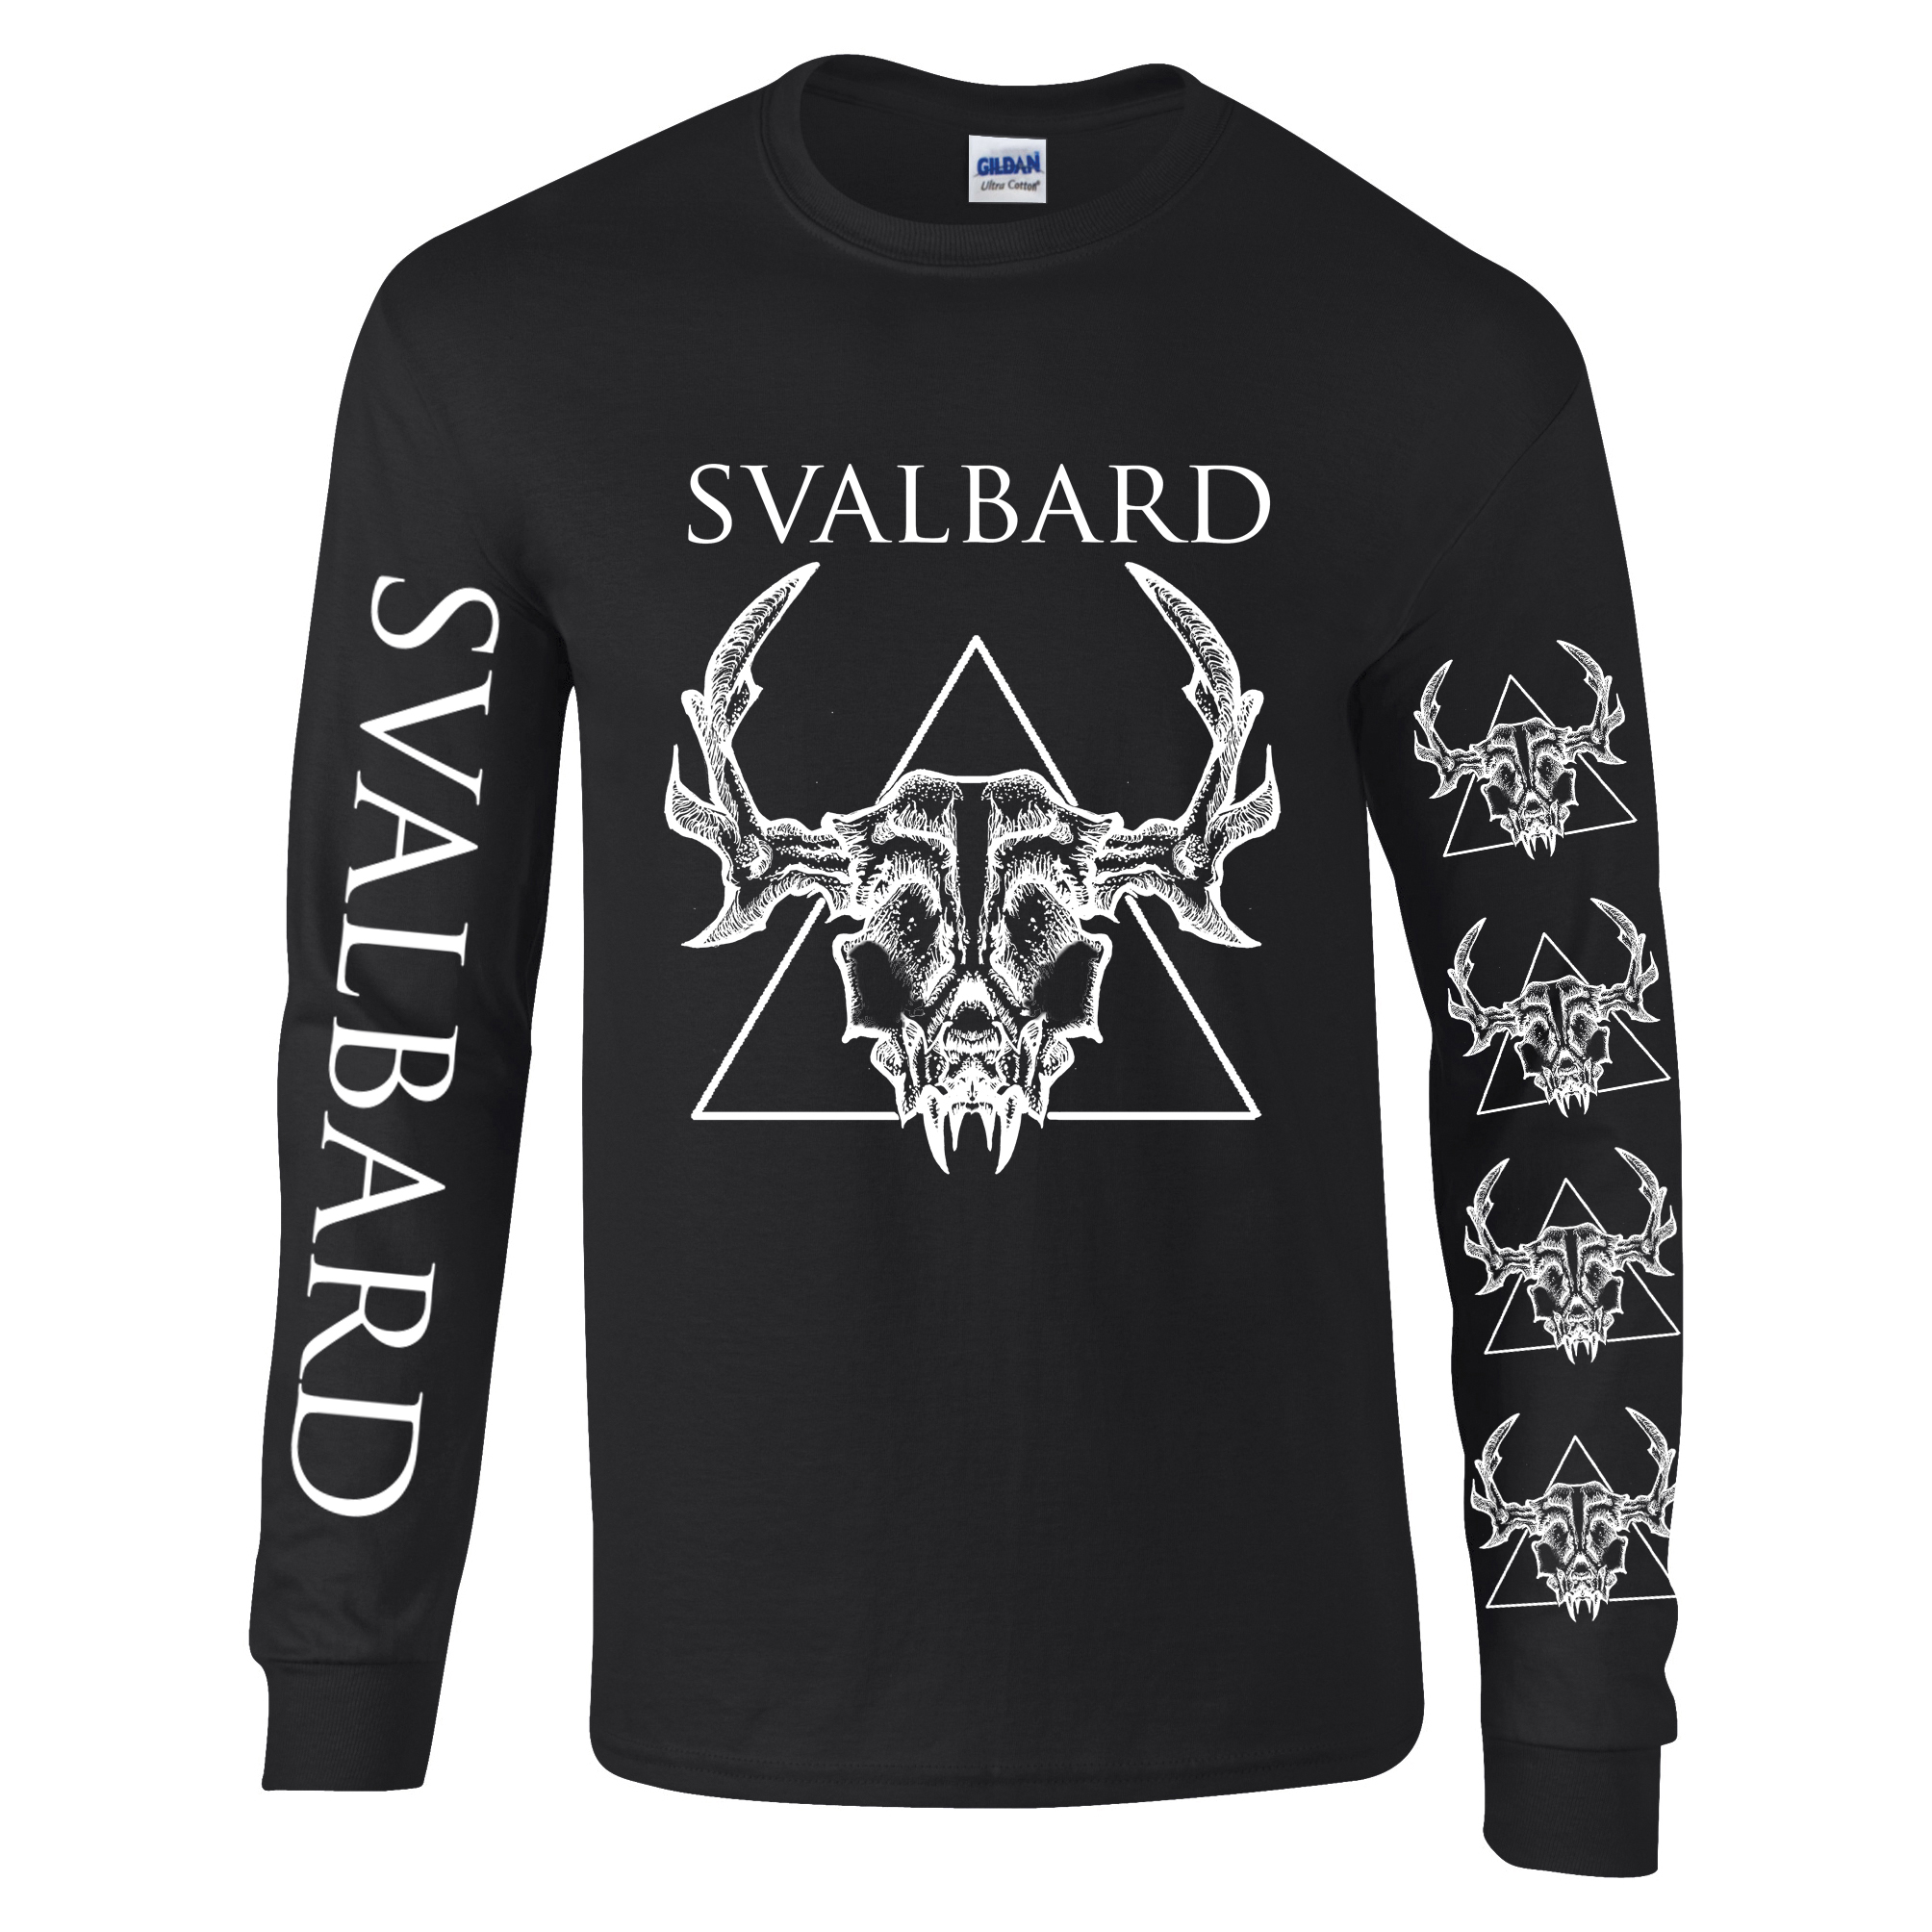 Svalbard - 'When I Die, Will I Get Better' long sleeve